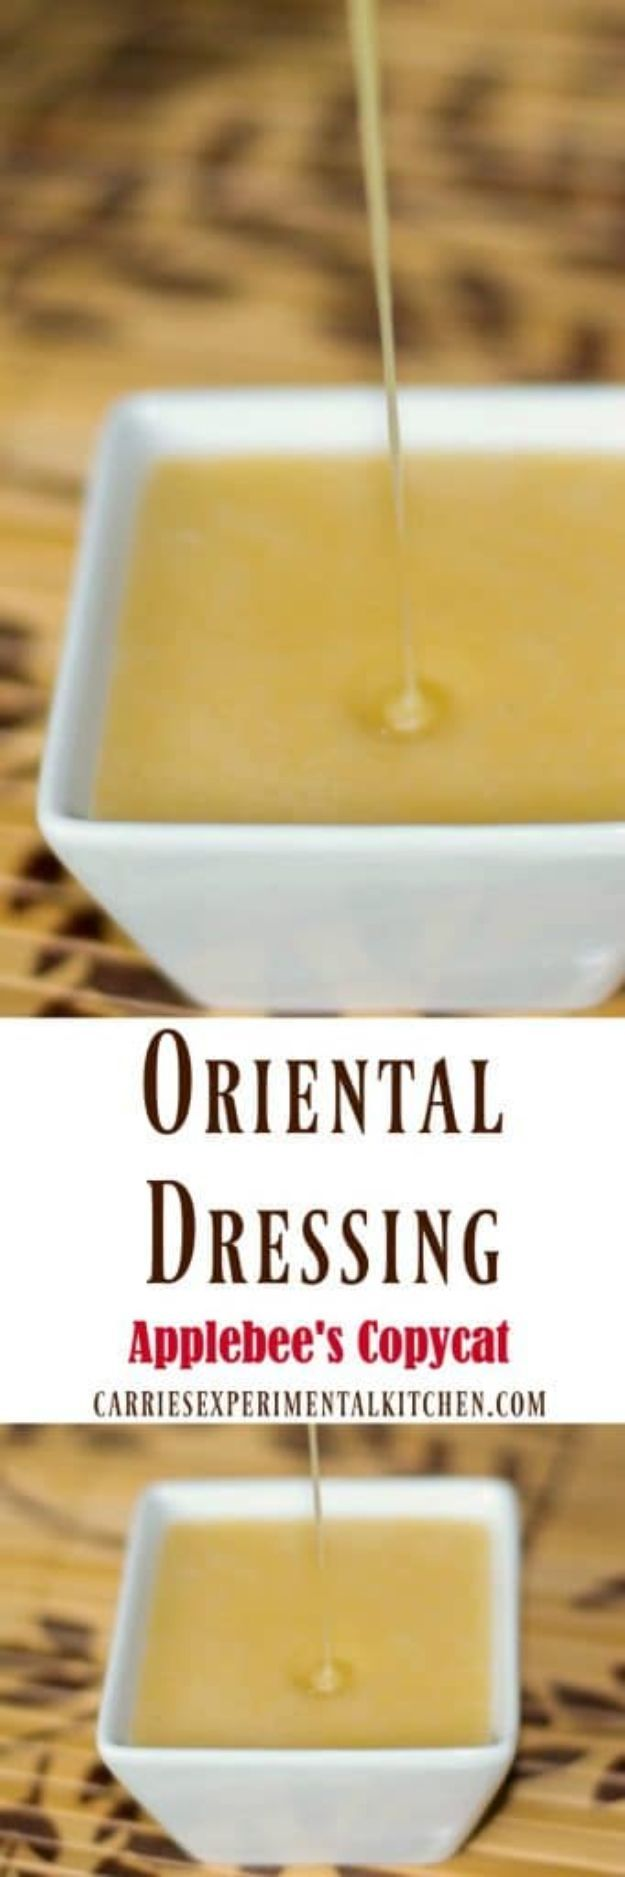 50 More Best Copycat Recipes From Top Restaurants - Applebee's Copycat Oriental Dressing - Awesome Recipe Knockoffs and Recipe Ideas from Chipotle Restaurant, Starbucks, Olive Garden, Cinabbon, Cracker Barrel, Taco Bell, Cheesecake Factory, KFC, Mc Donalds, Red Lobster, Panda Express http://diyjoy.com/best-copycat-restaurant-recipes